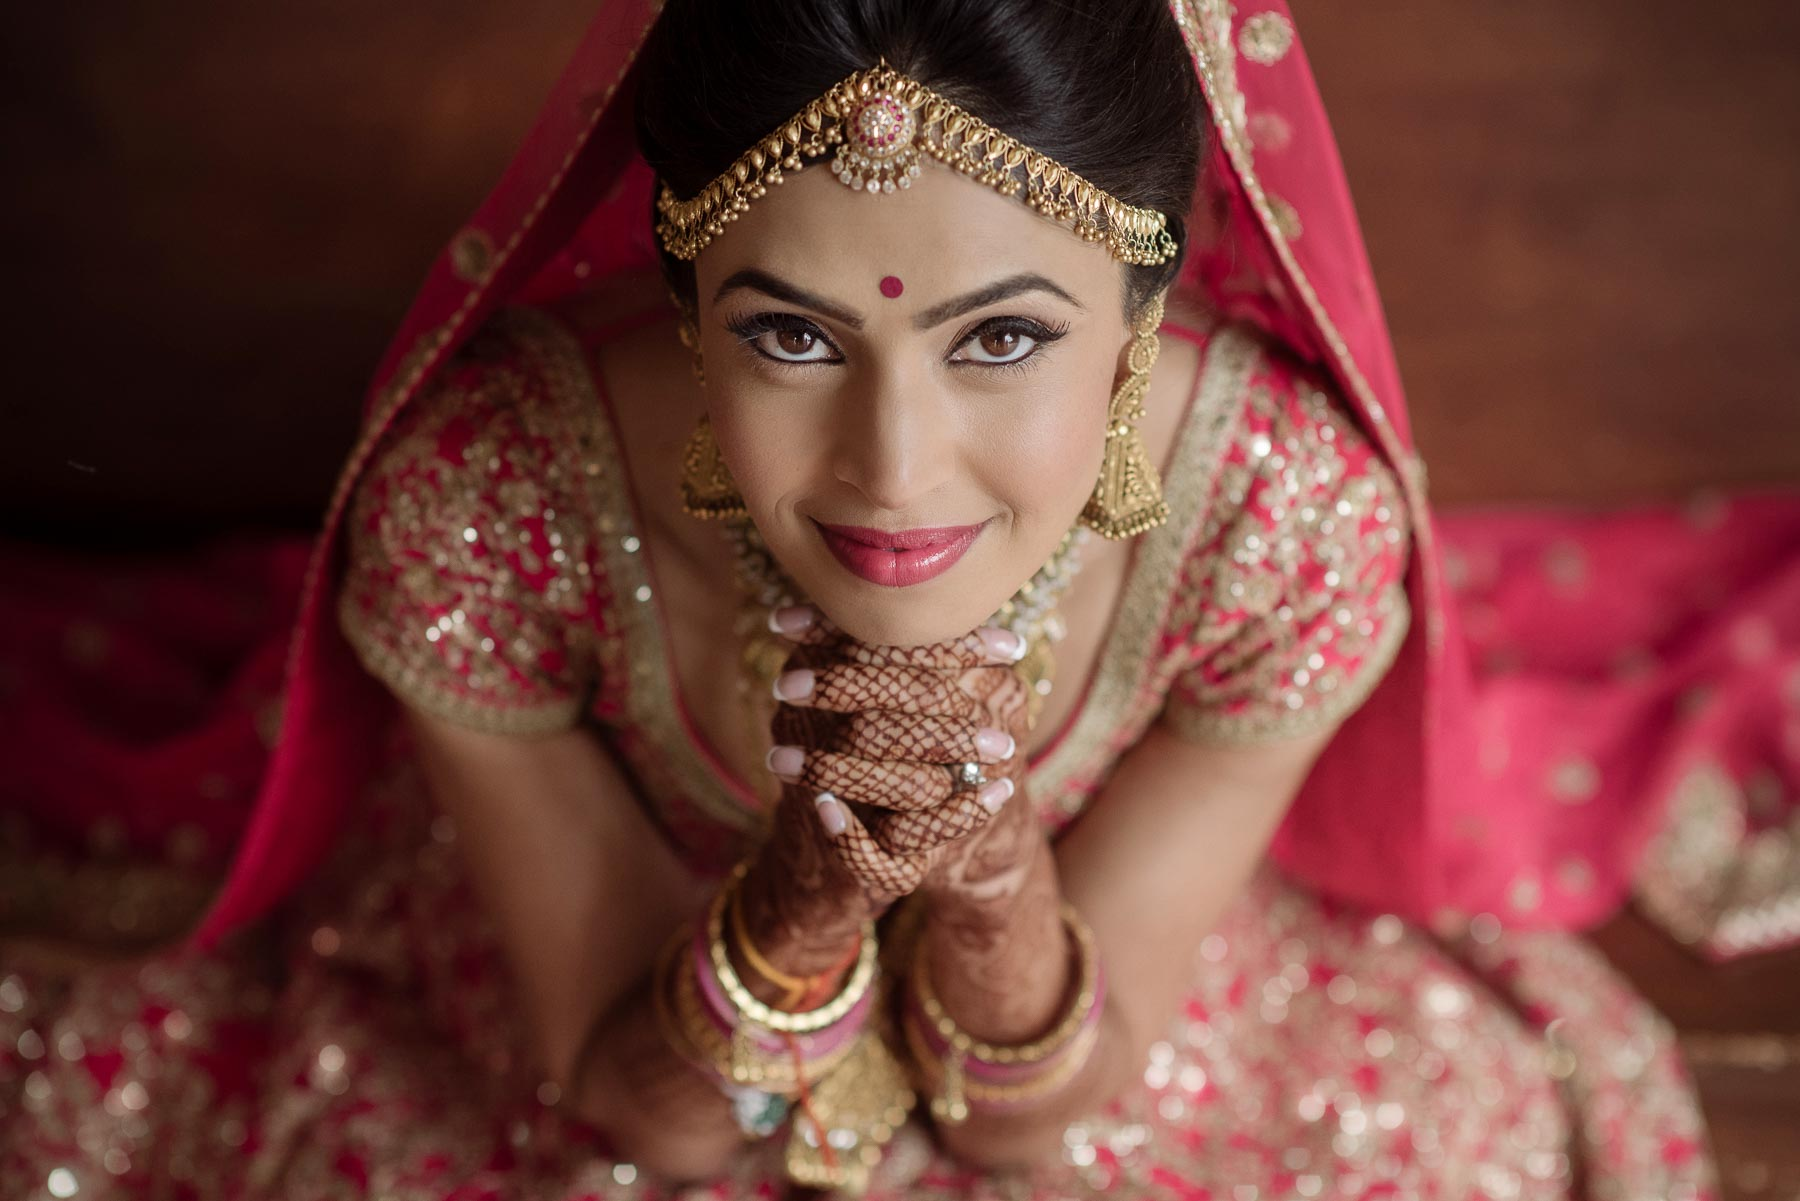 Indian Beauty salon Bridal Make-up artistry in Aldie Bridal photo shoot indian